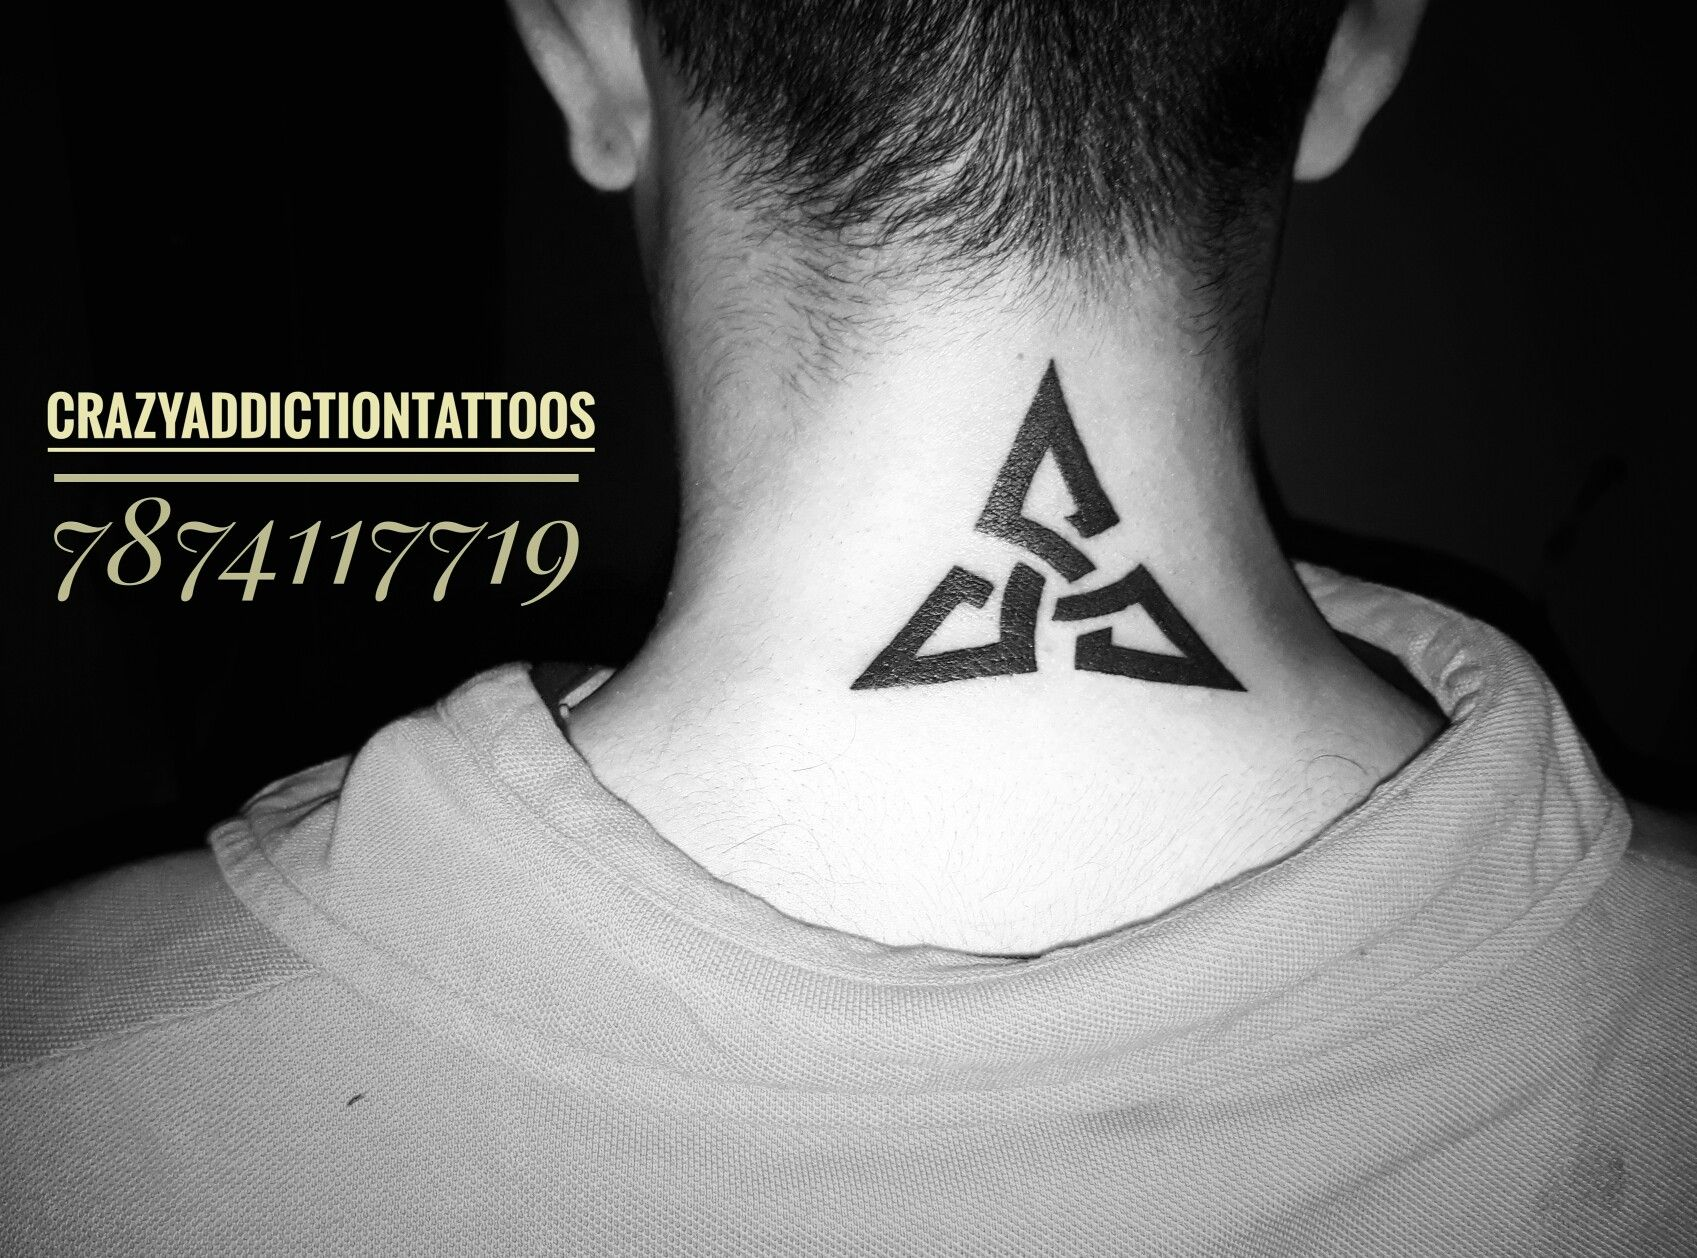 triangle tattoos on neck tattoo by rohit panchal at crazy addiction tattoos vadodara india. Black Bedroom Furniture Sets. Home Design Ideas